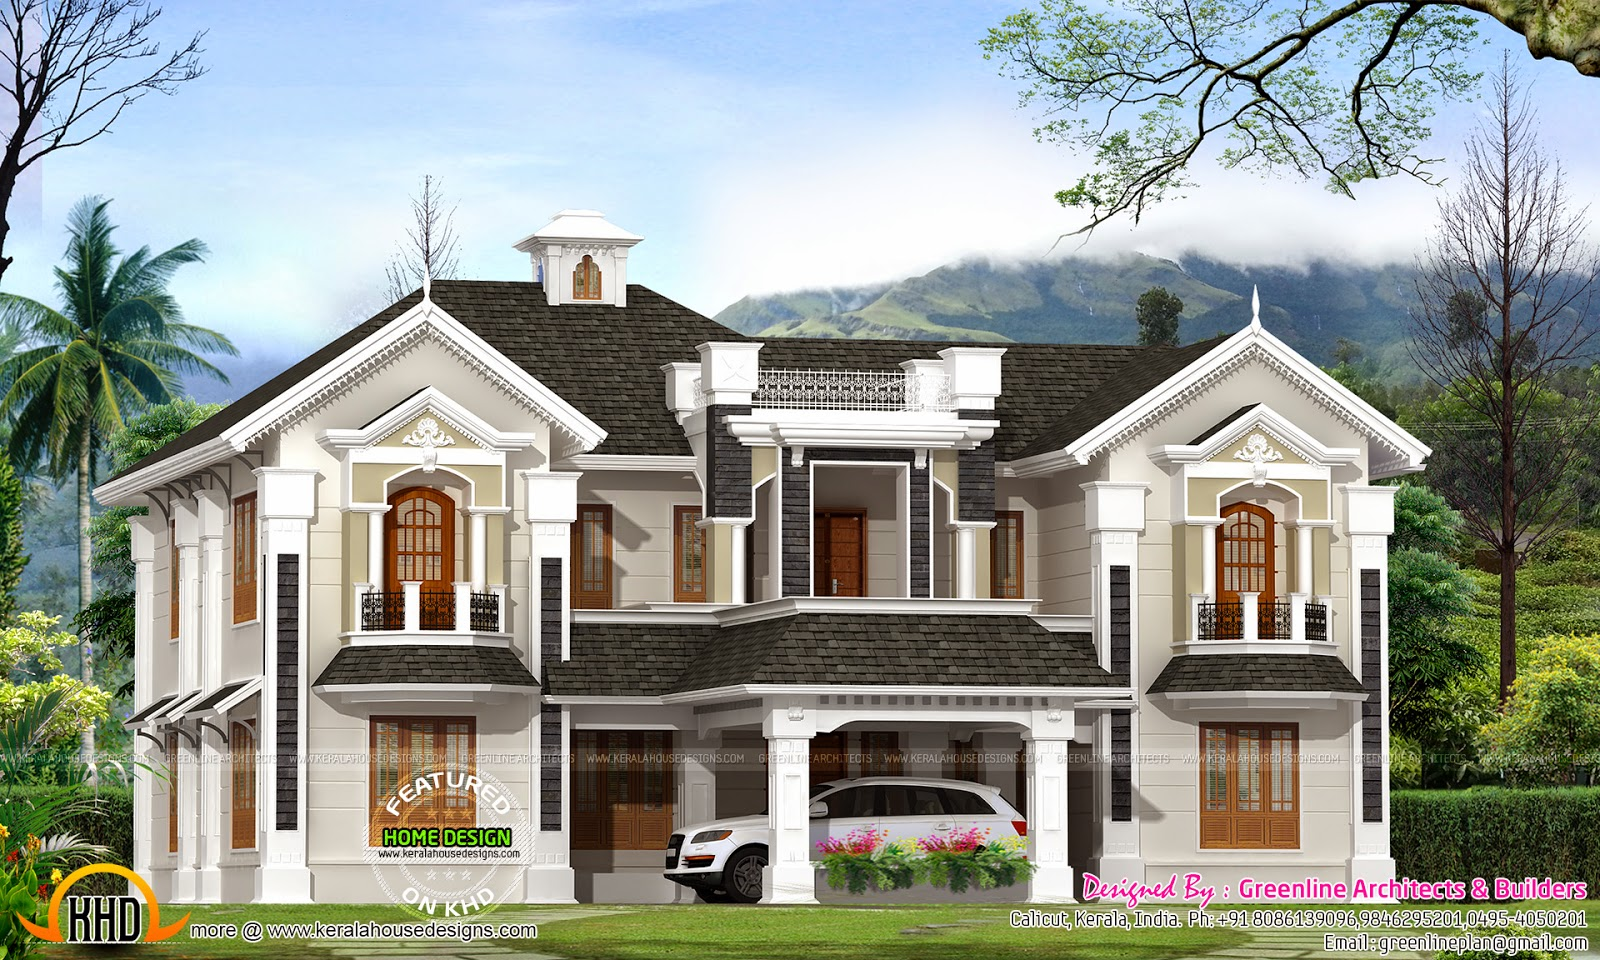 Colonial style house in kerala kerala home design and Home design latest